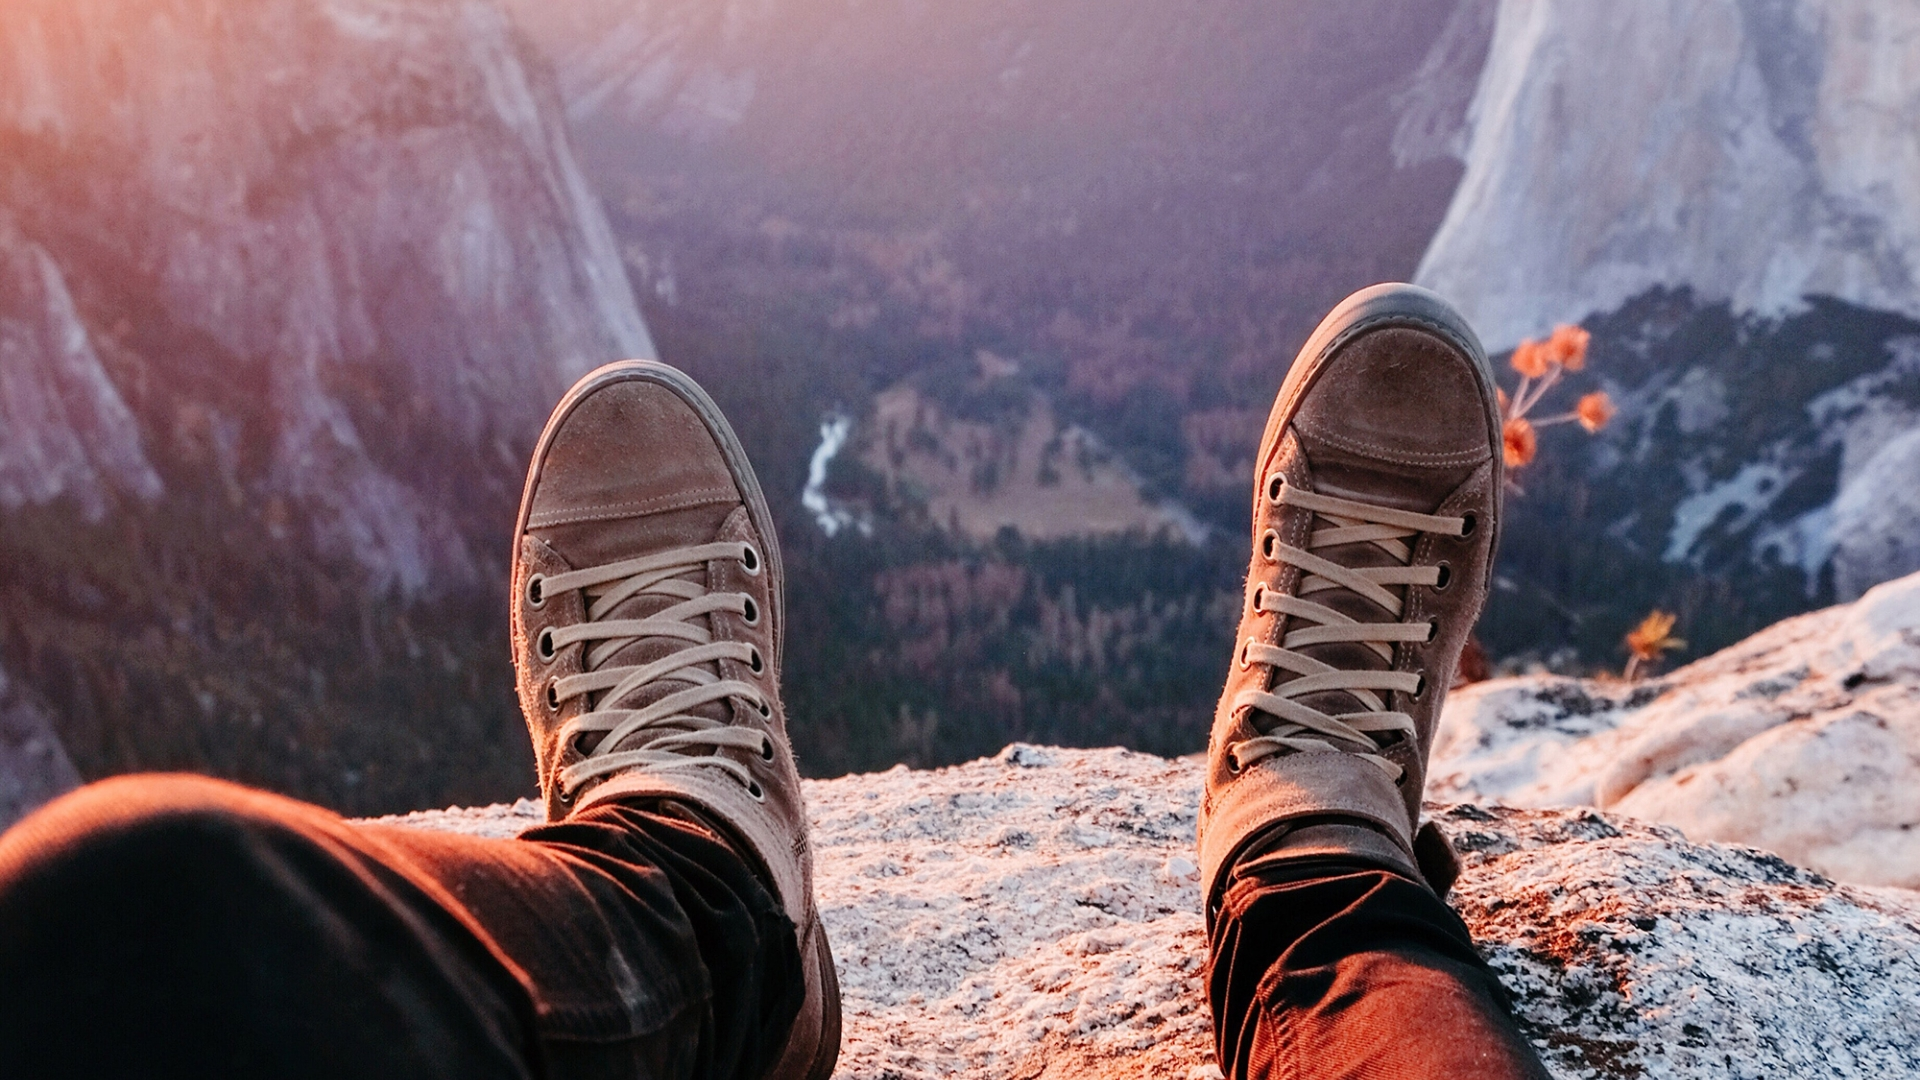 Seen from the legs down, we see legs and a pair of boots resting on a grey stone cliff.